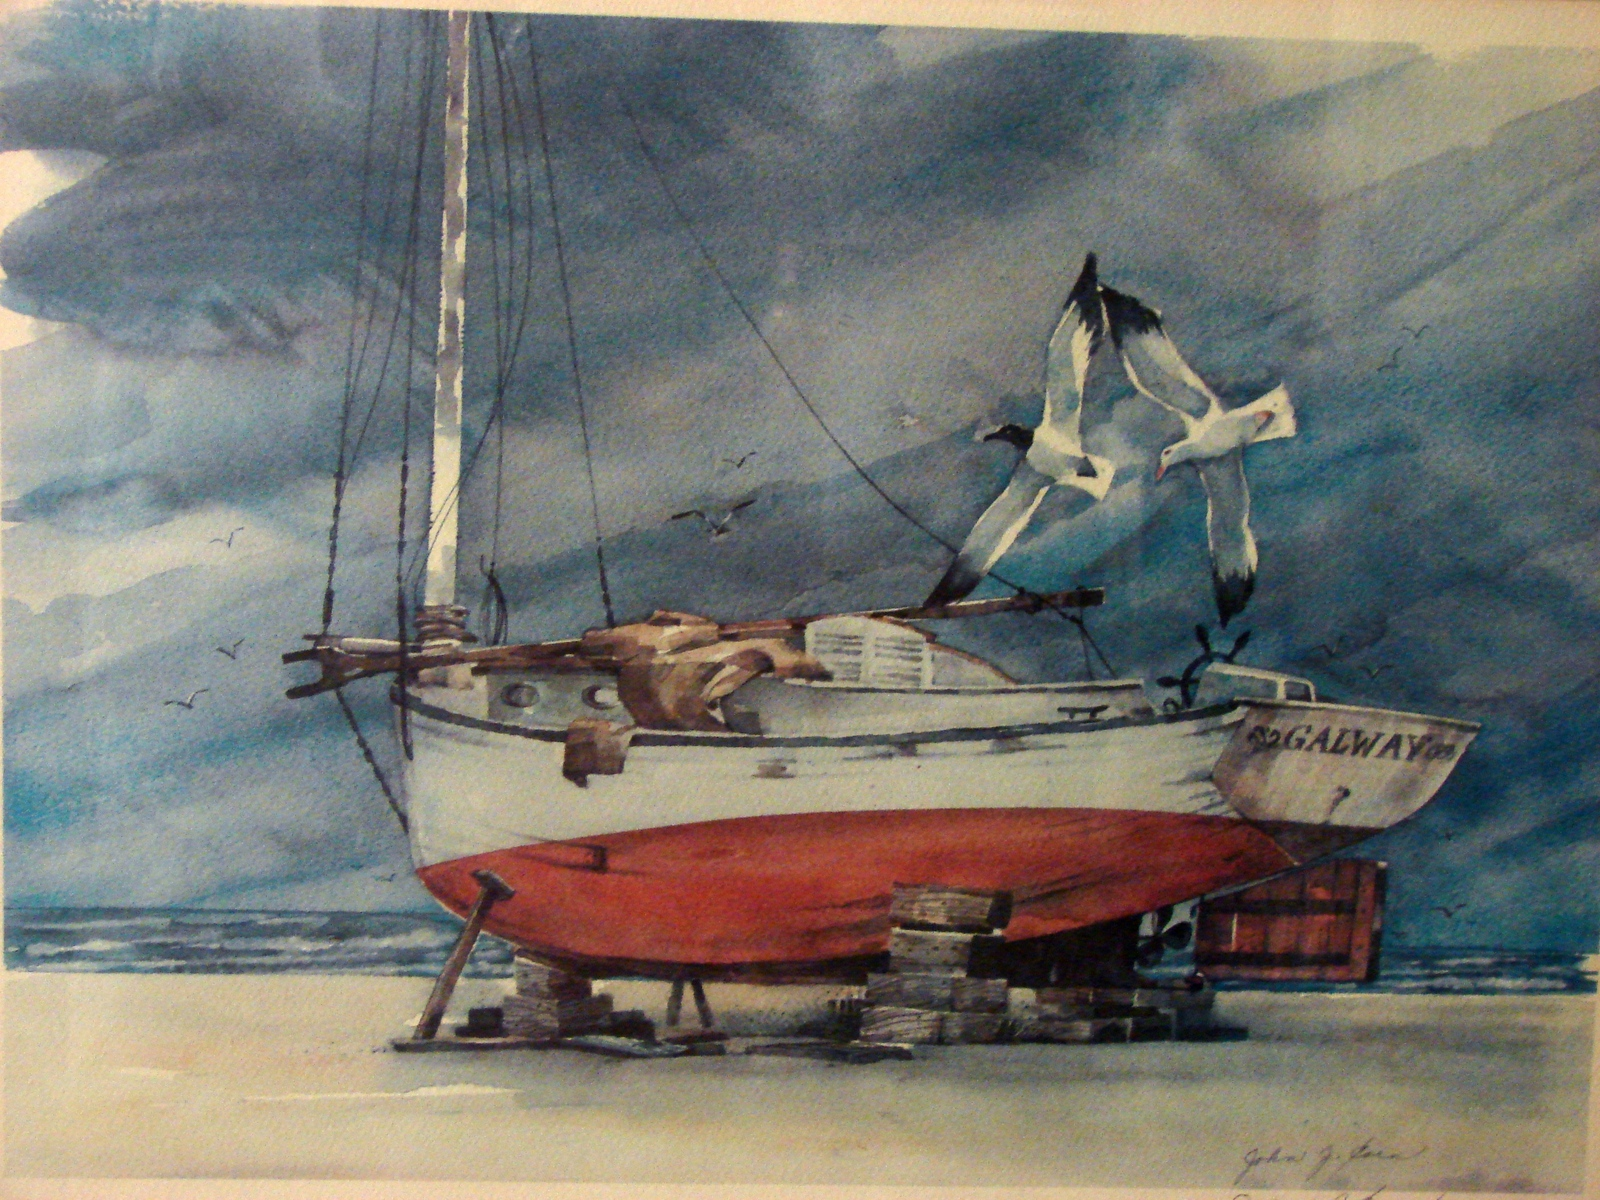 Framed, Matted and Signed  John J. Coen Sailboat Print Galloway